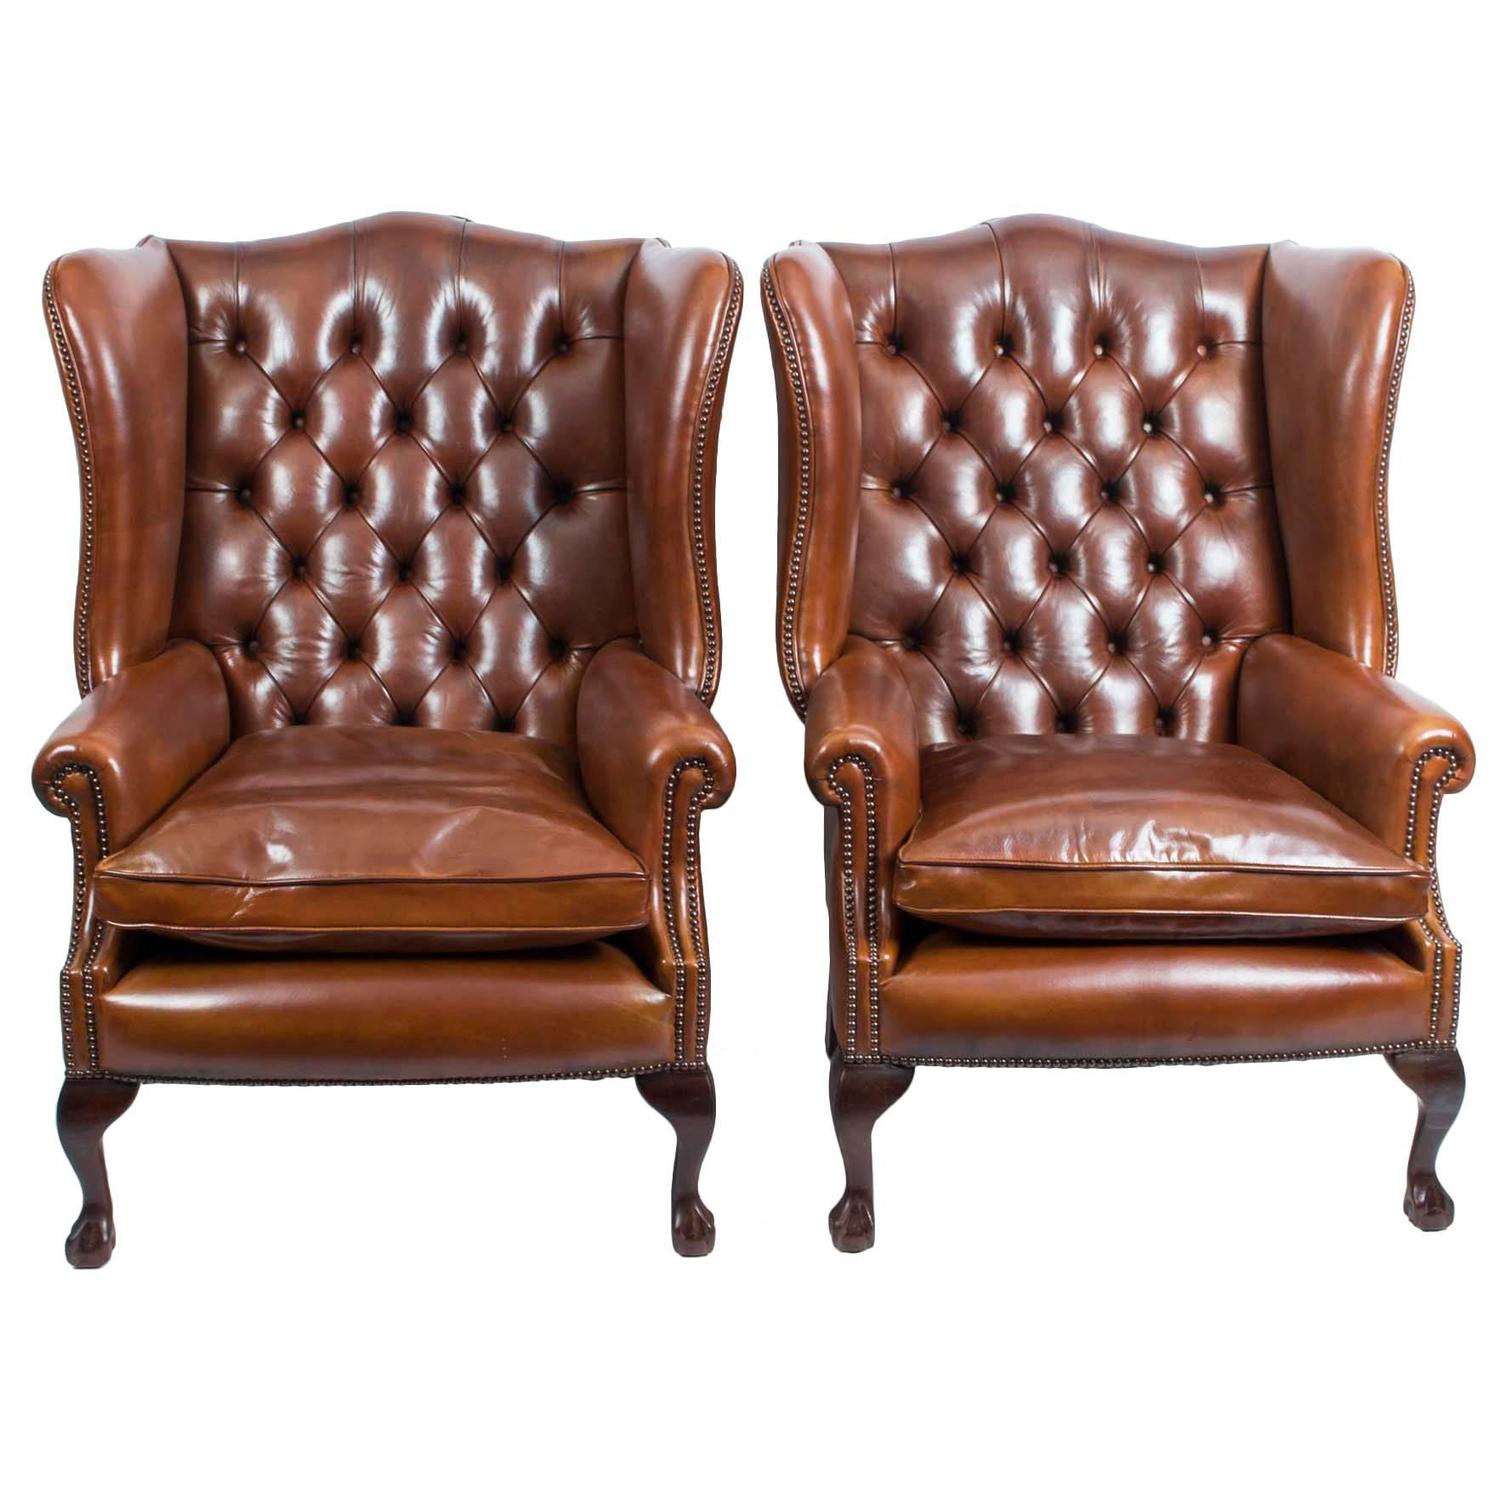 Pair of Leather Ball and Claw Wing Chairs Armchairs For Sale at